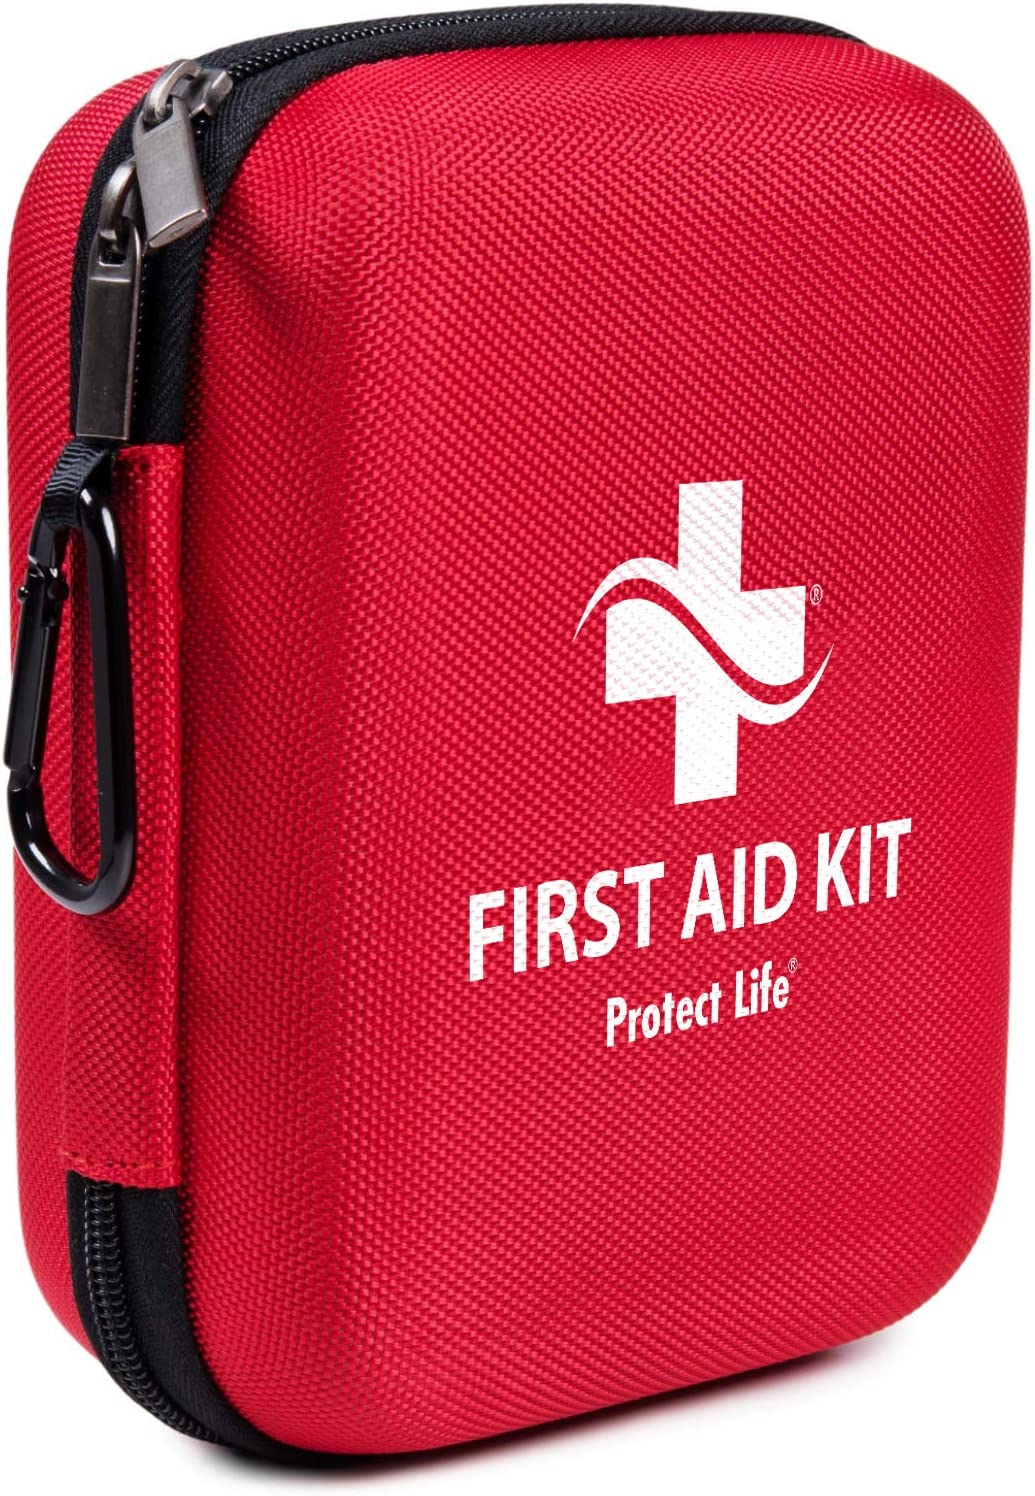 First Aid Kit - 200 Piece - for Car, Home, Outdoors, Sports, Camping, Hiking or Office | Red Case Fully Packed with Emergency Supplies: Health & Personal Care